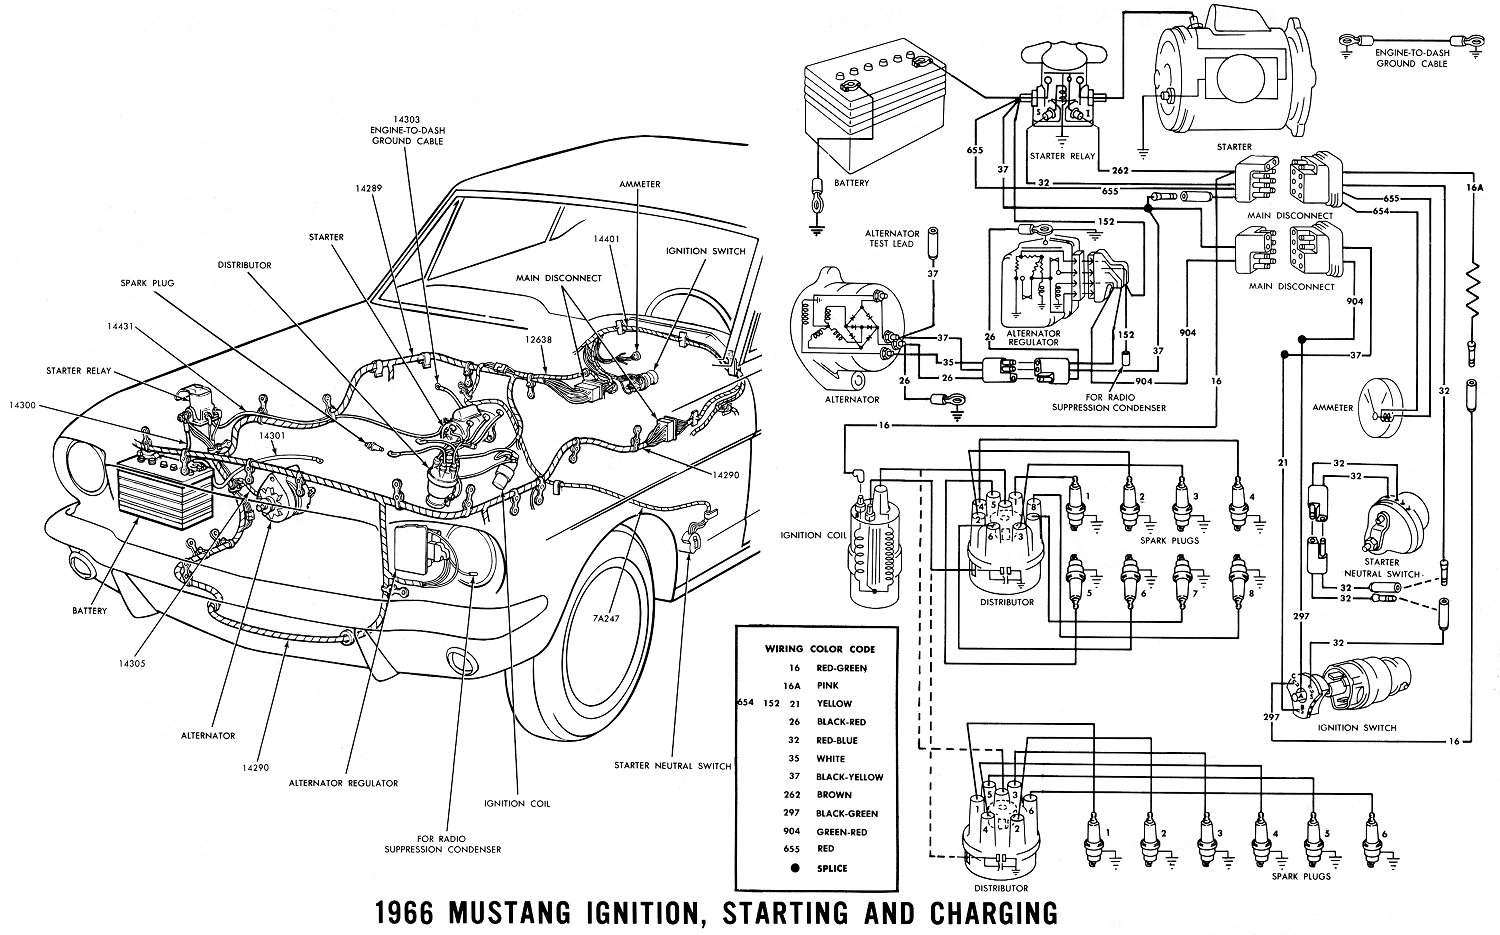 66ignit 1966 mustang wiring diagrams average joe restoration 1966 mustang headlight wiring diagram at n-0.co